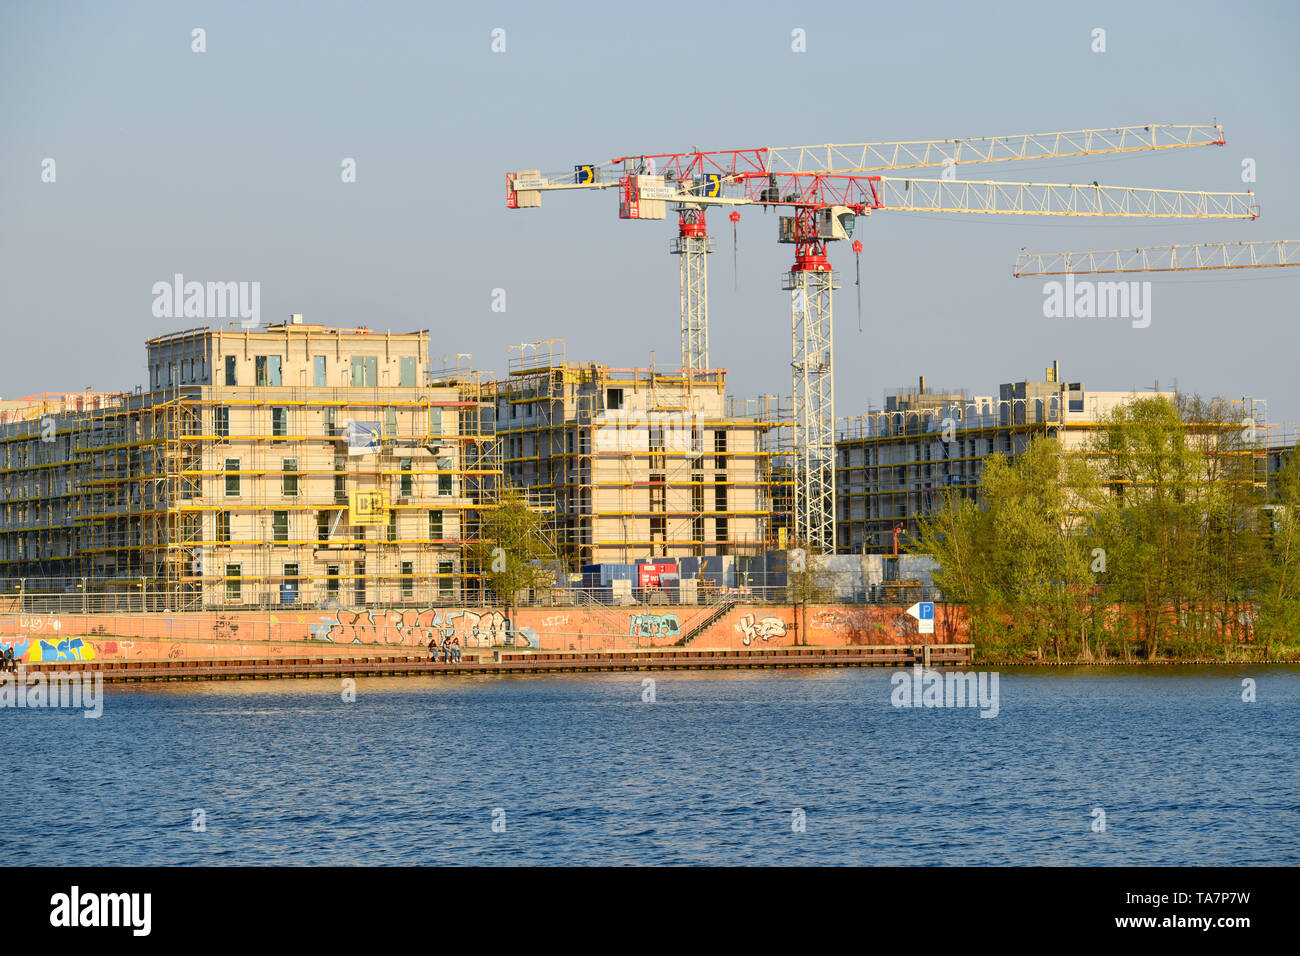 New building, residential accommodation Waterkant, water town of Spandau, Daumstrasse, to hook field, Spandau, Berlin, Germany, Neubau, Wohnquartier W - Stock Image